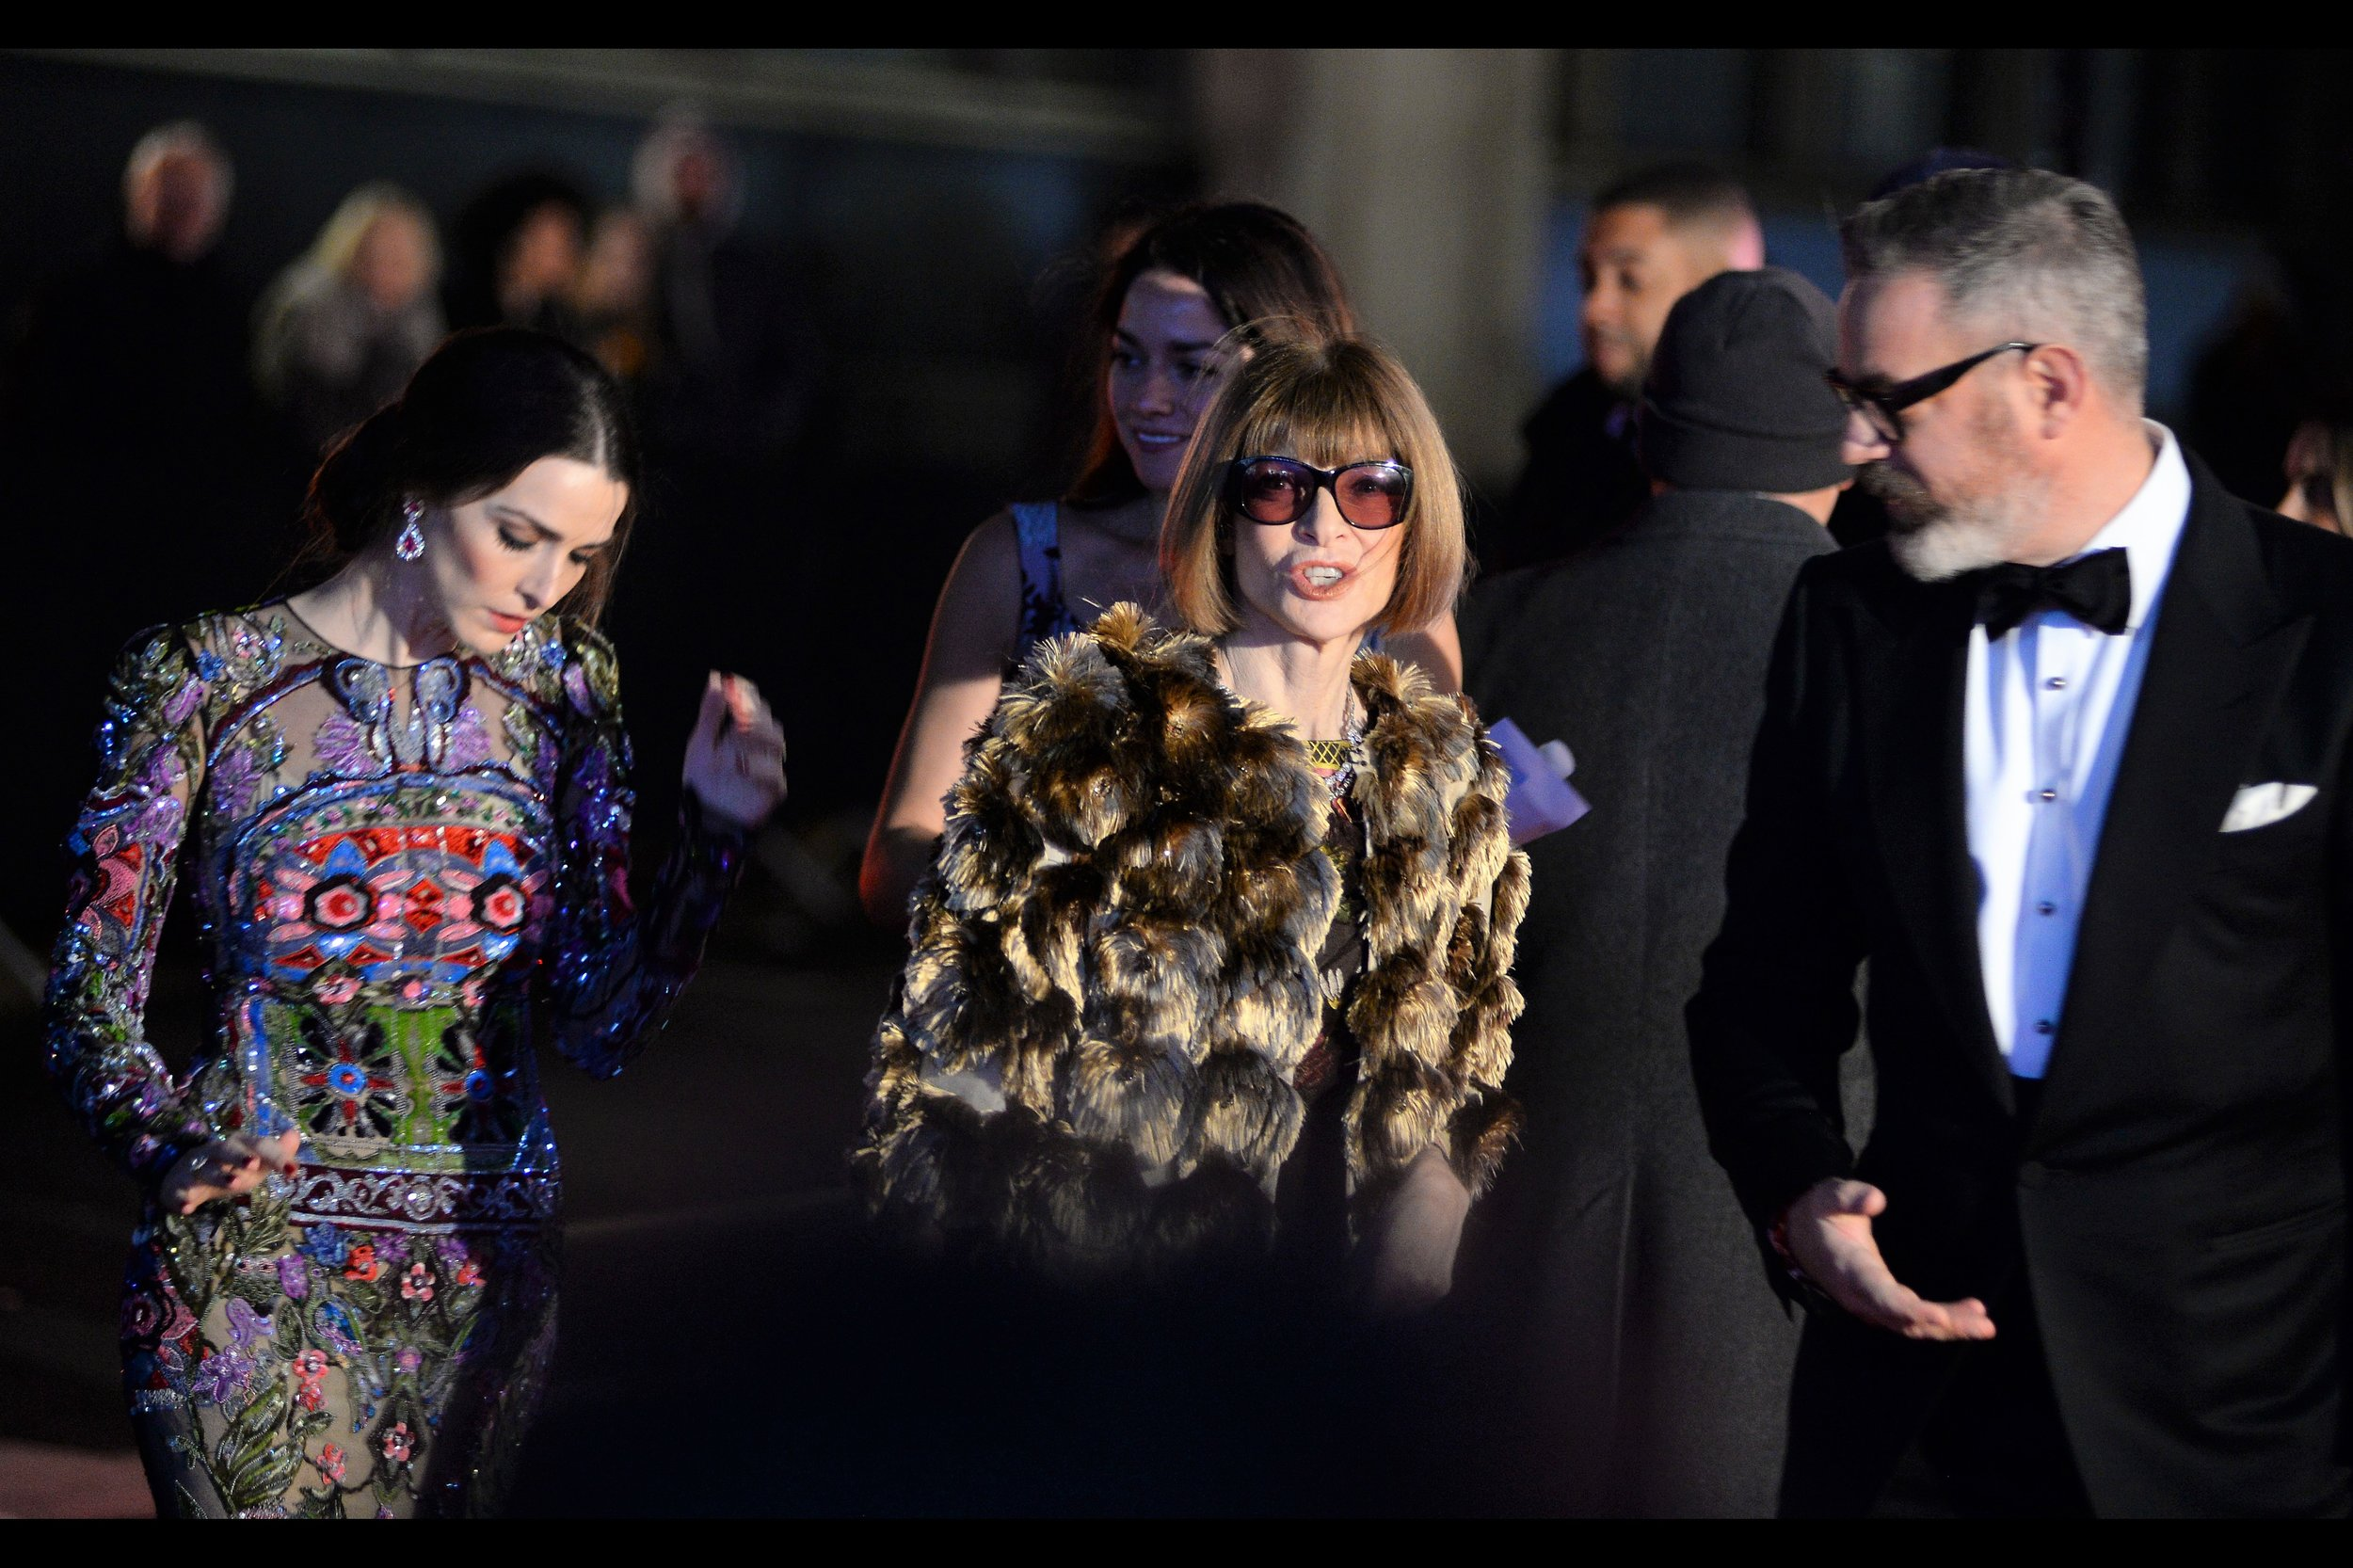 """Just because I was in that movie doesn't mean I'm about to sign autographs…""  - Anna Wintour might be best known as a longtime editor of Vogue, but her imdb credits include Oceans 8 and Zoolander 2."